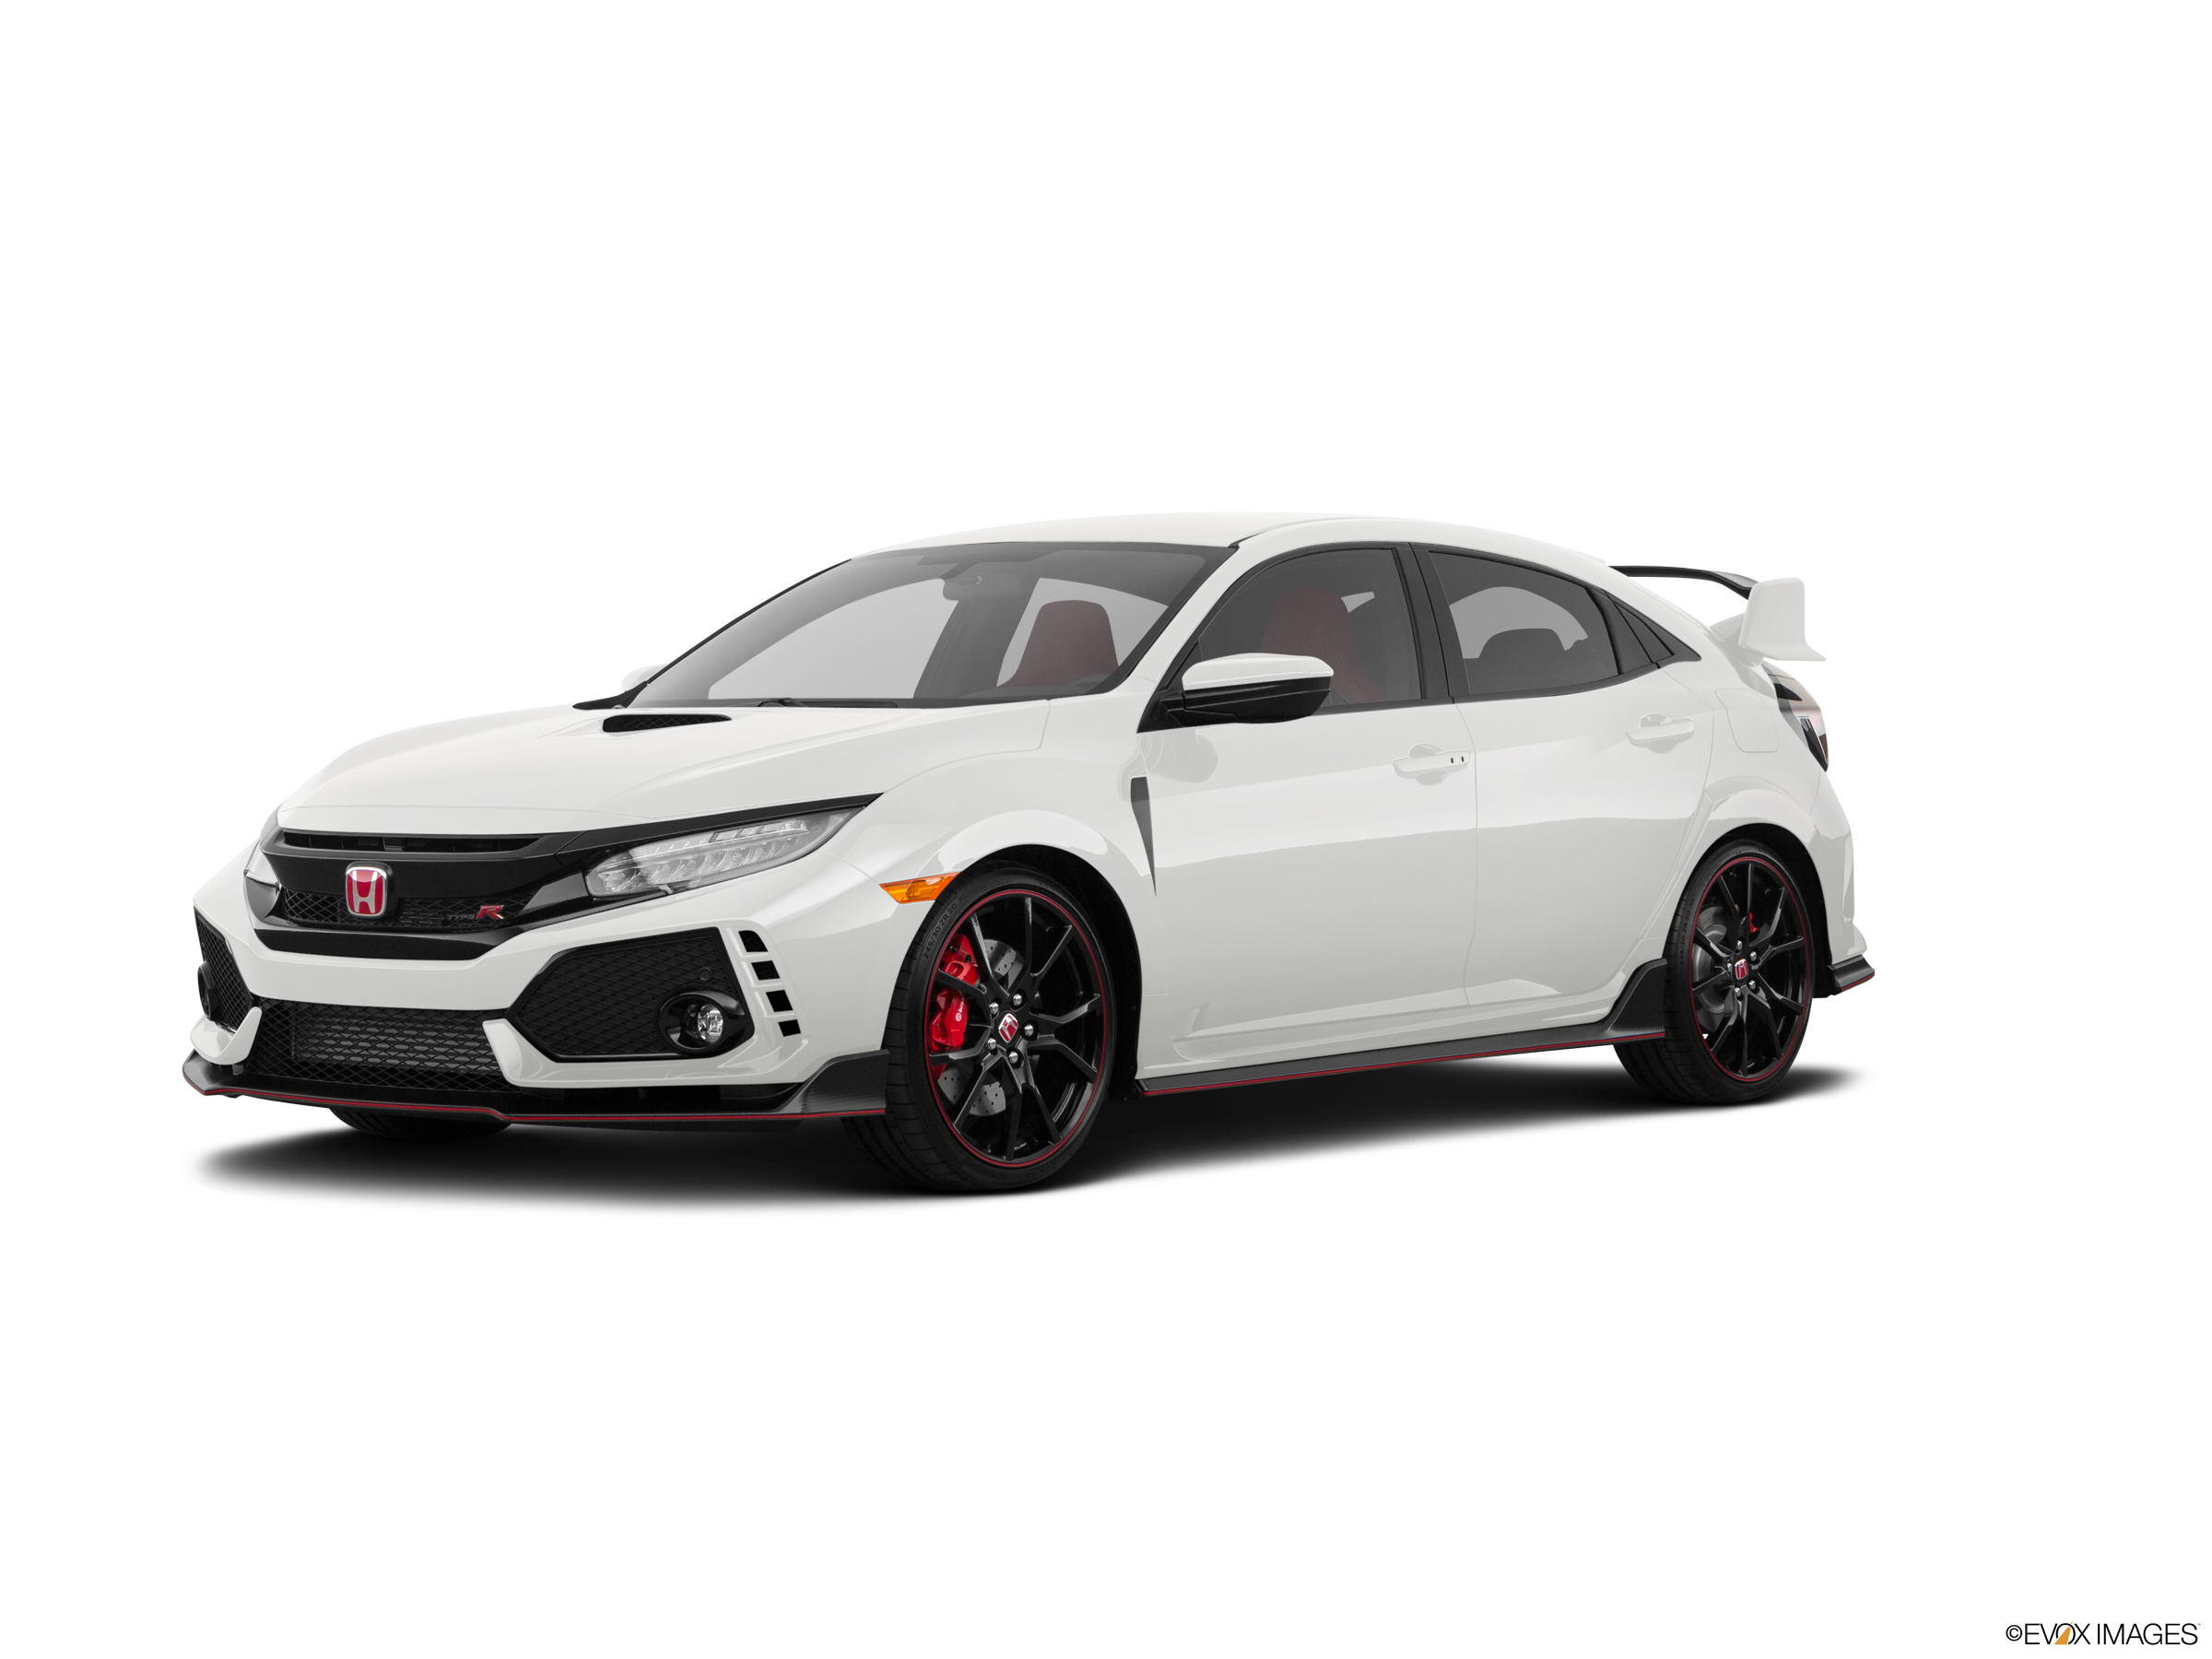 Top Expert Rated Hatchbacks of 2017 - 2017 Honda Civic Type R